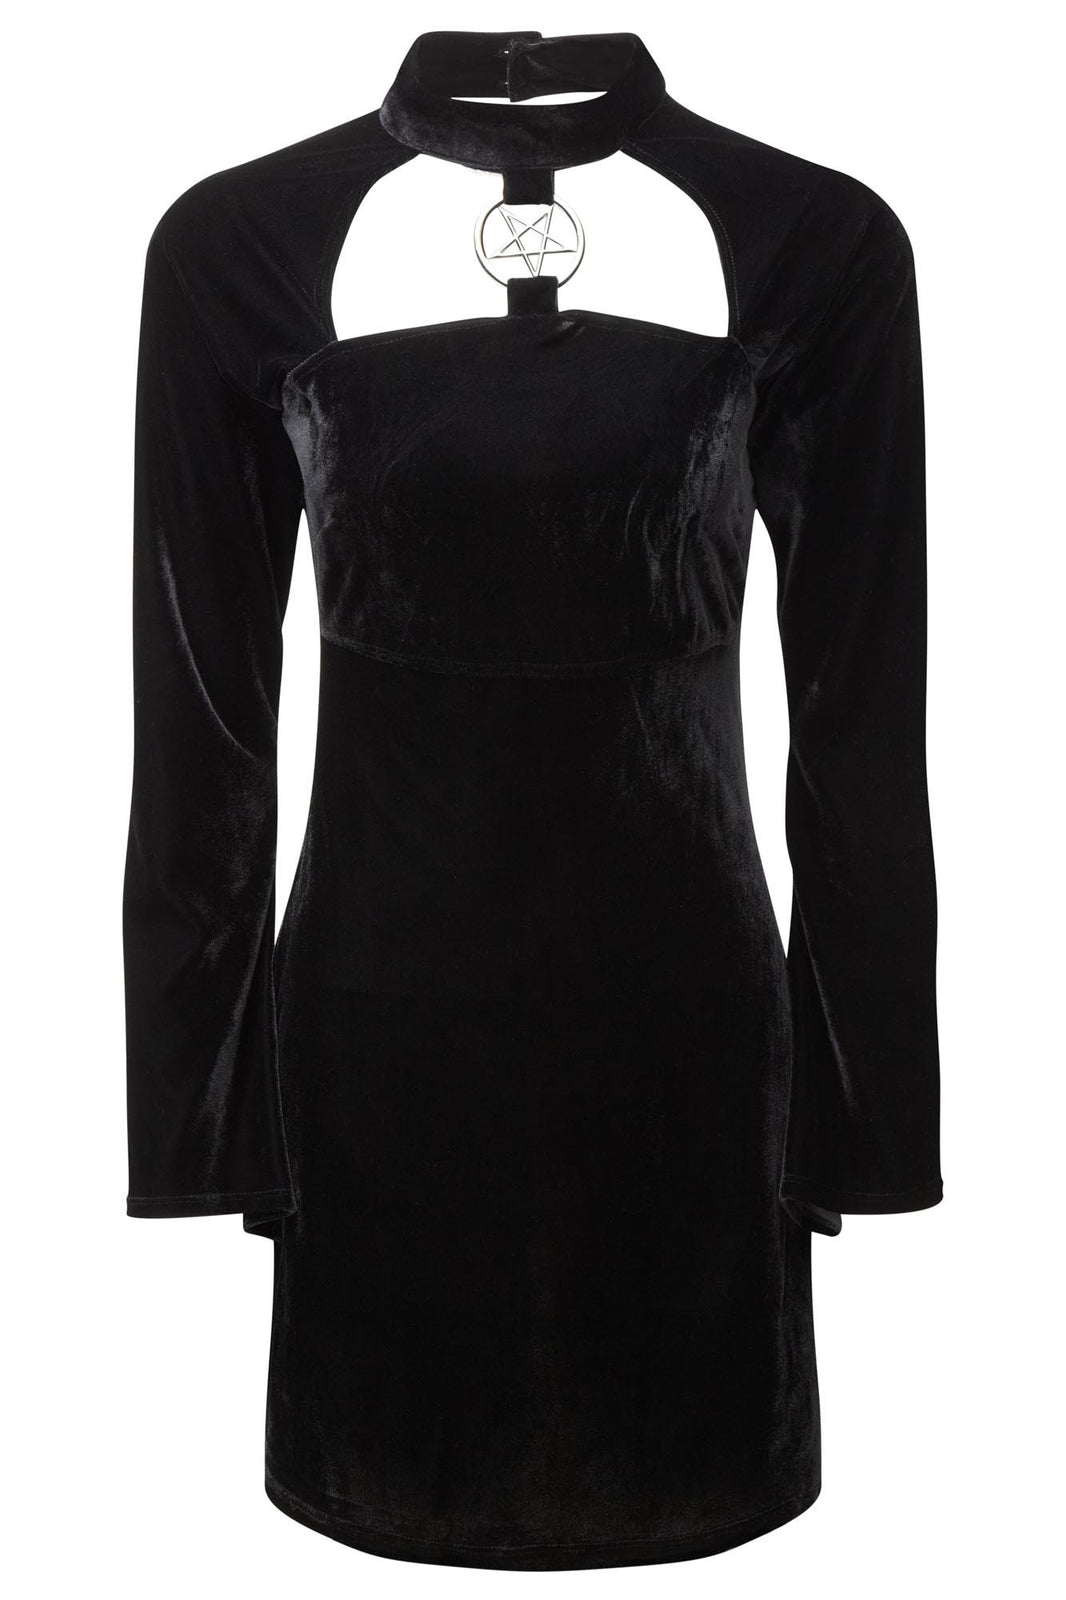 Ziva She's Evil Black Velvet Dress | Goth Dress